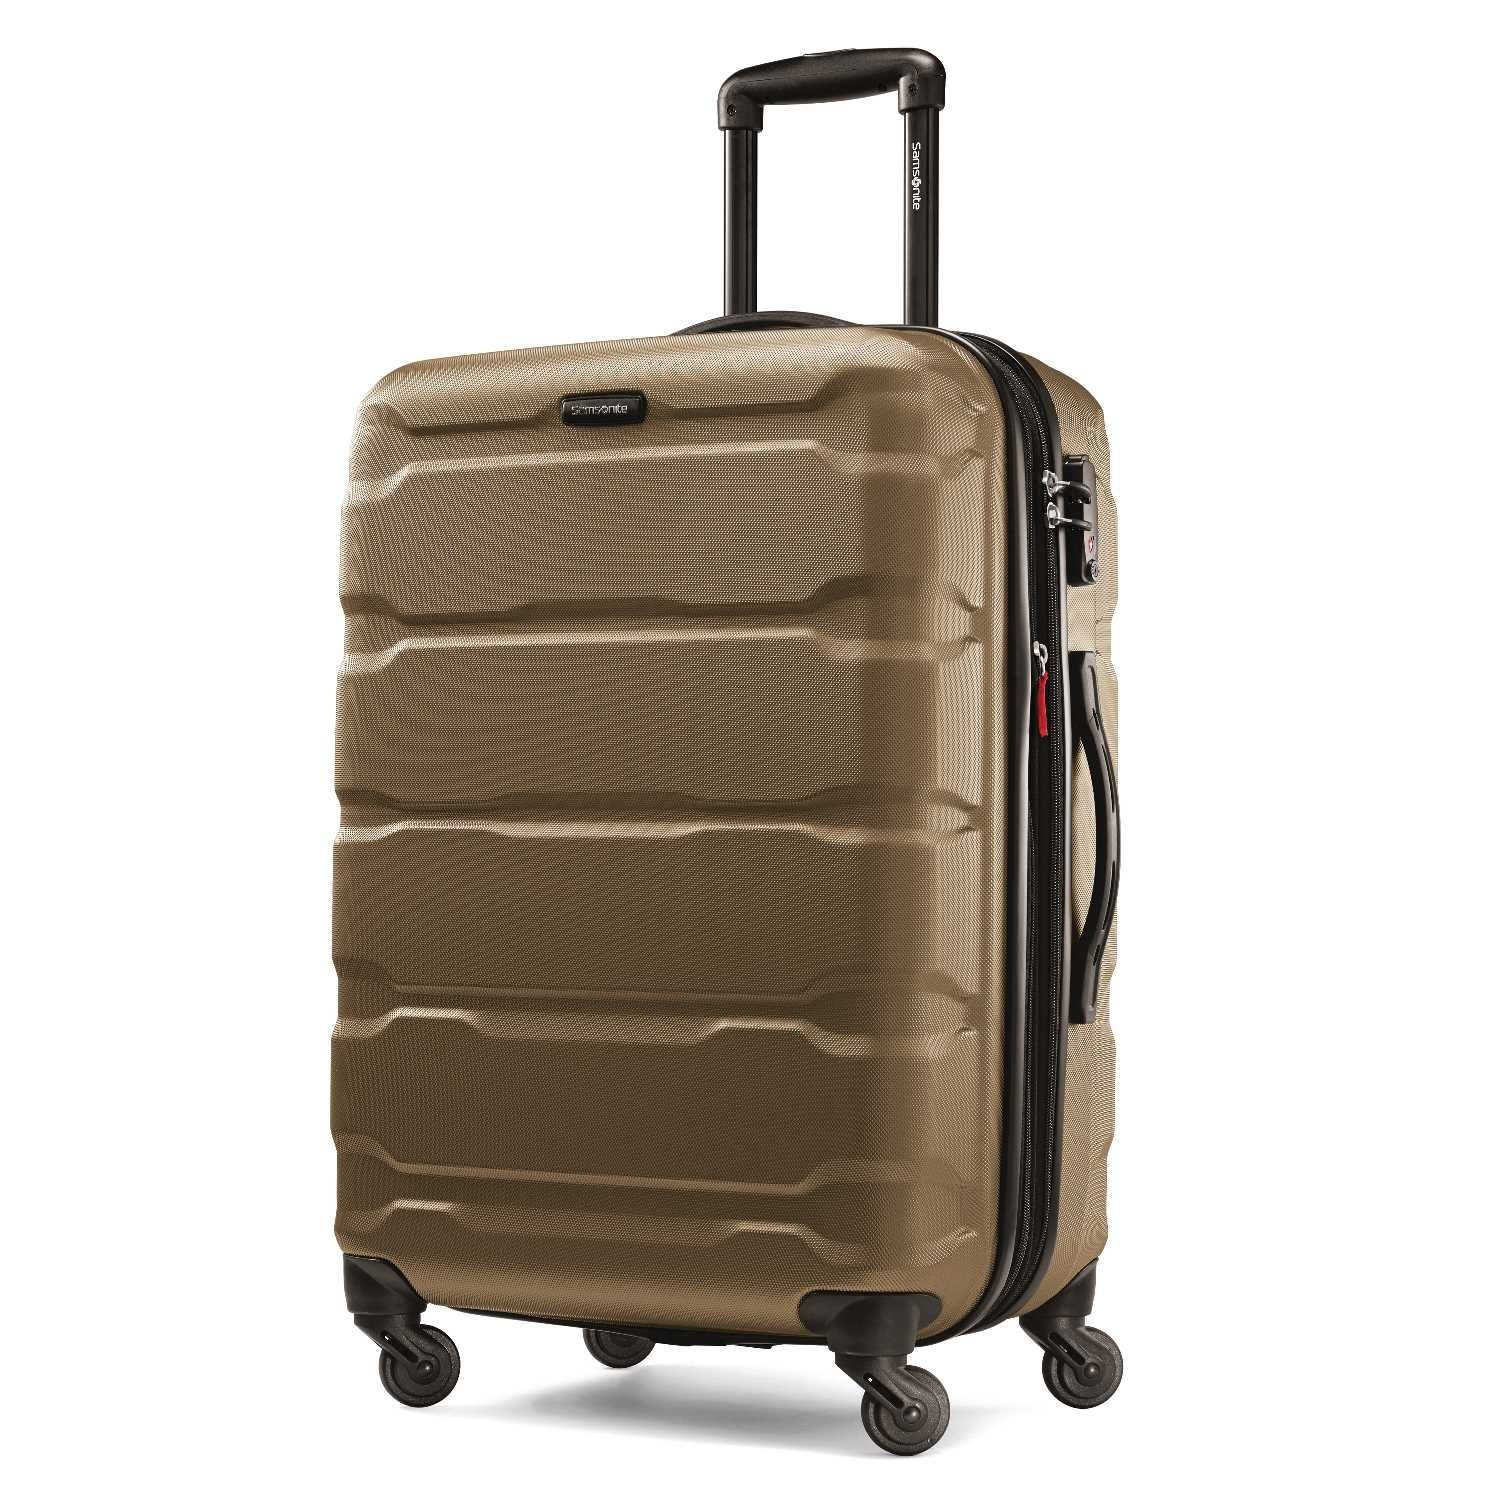 Samsonite Omni PC Hardside Spinner 24, Teal Samsonite Corporation 68309-2824